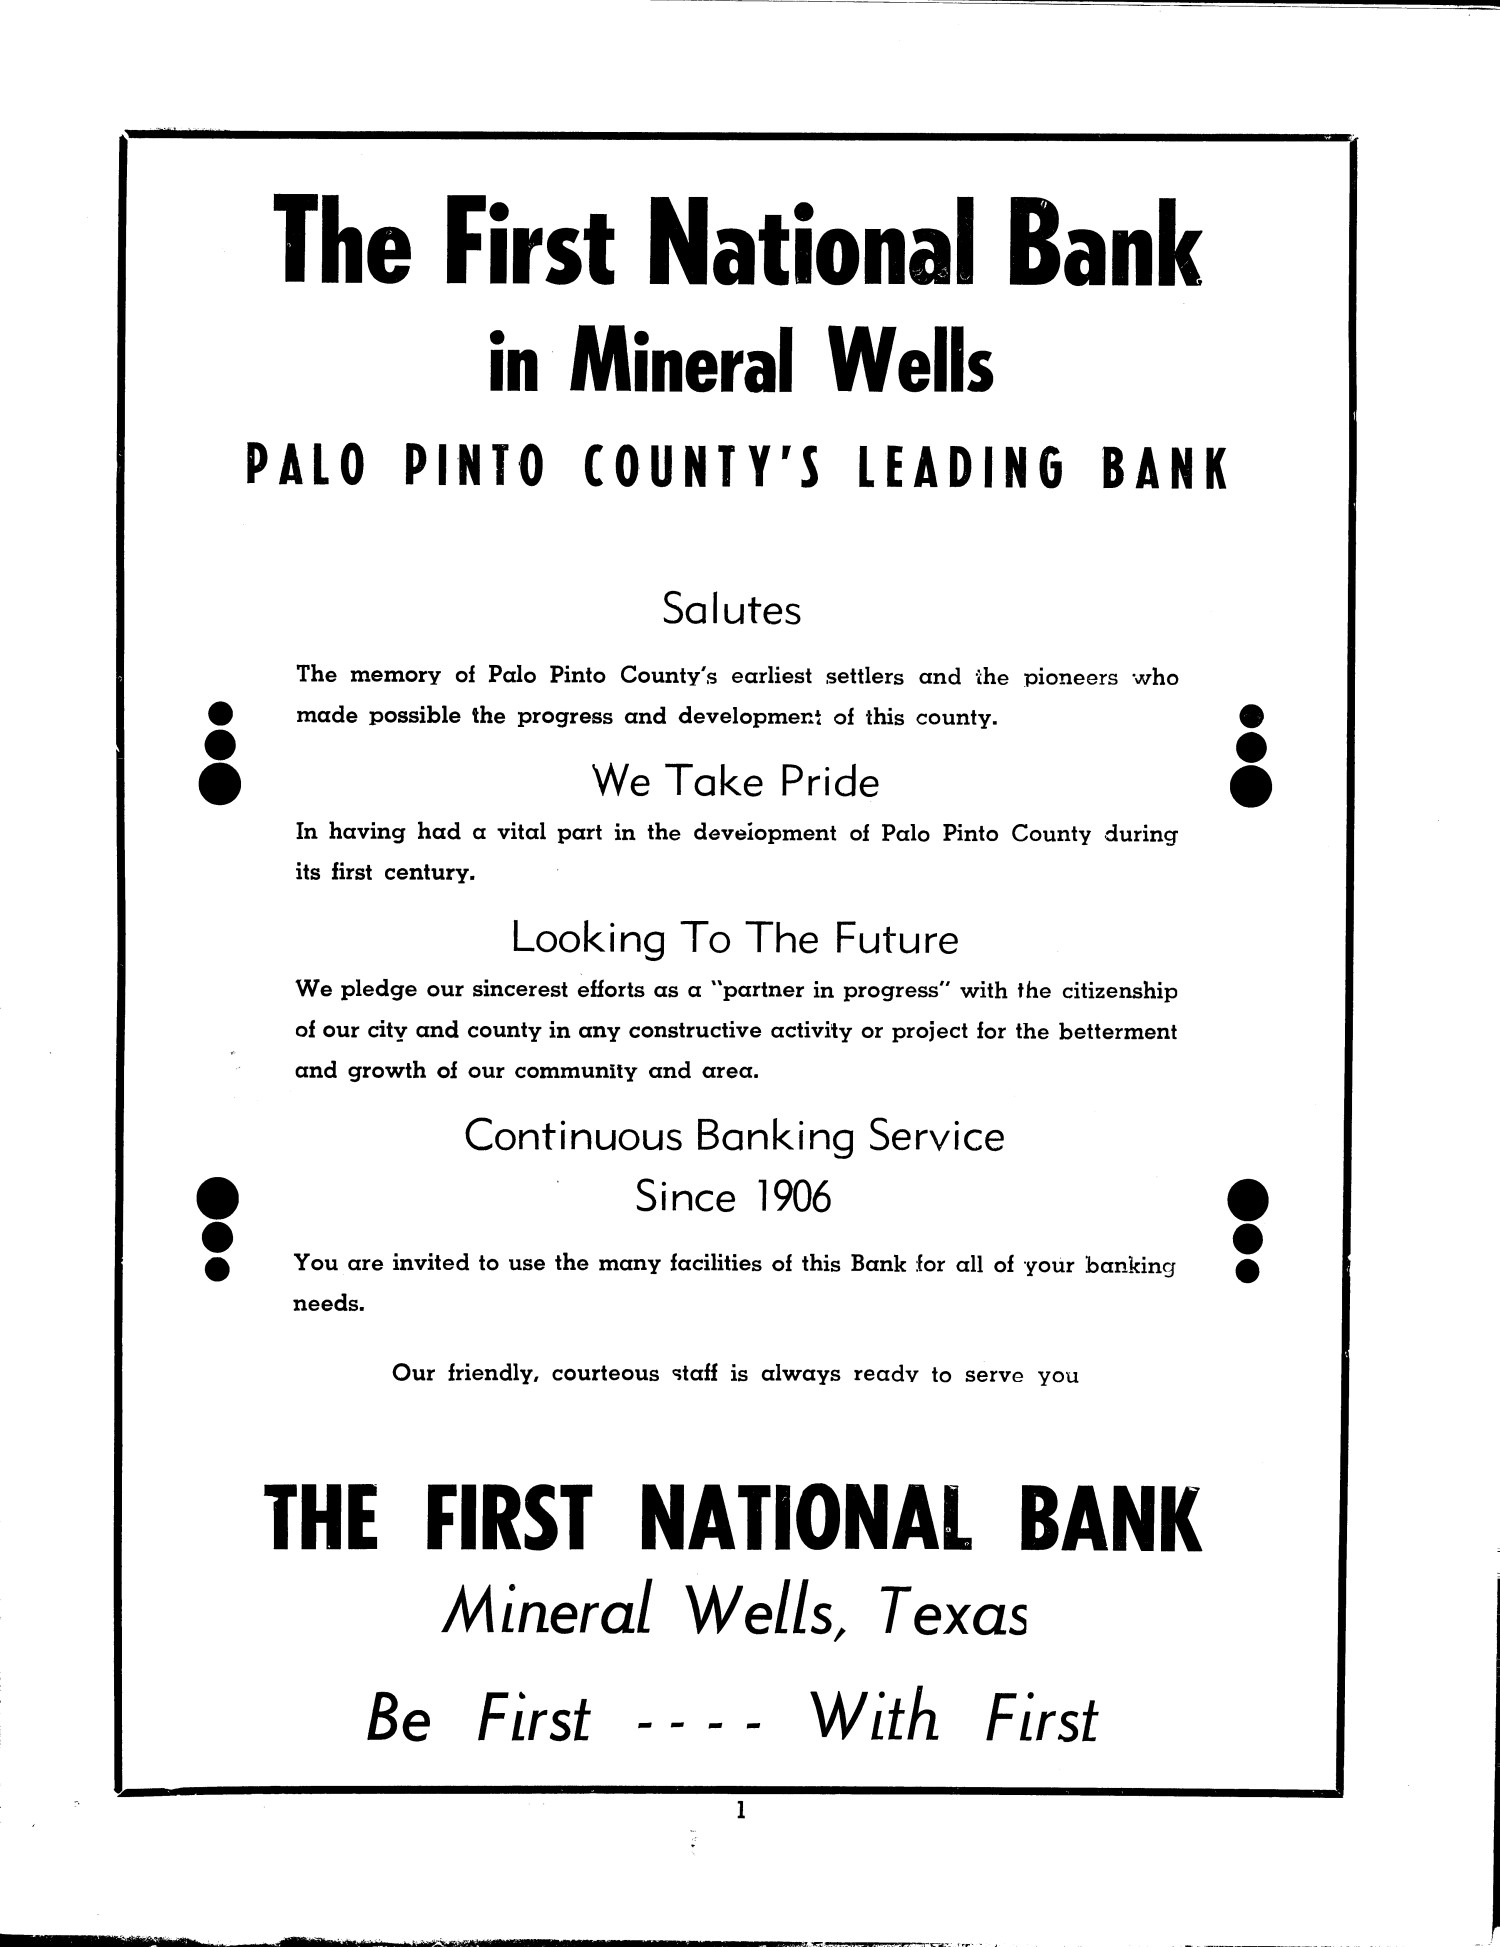 Palocade - Palo Pinto County - Official Centennial Program - back page                                                                                                      [Sequence #]: 1 of 31